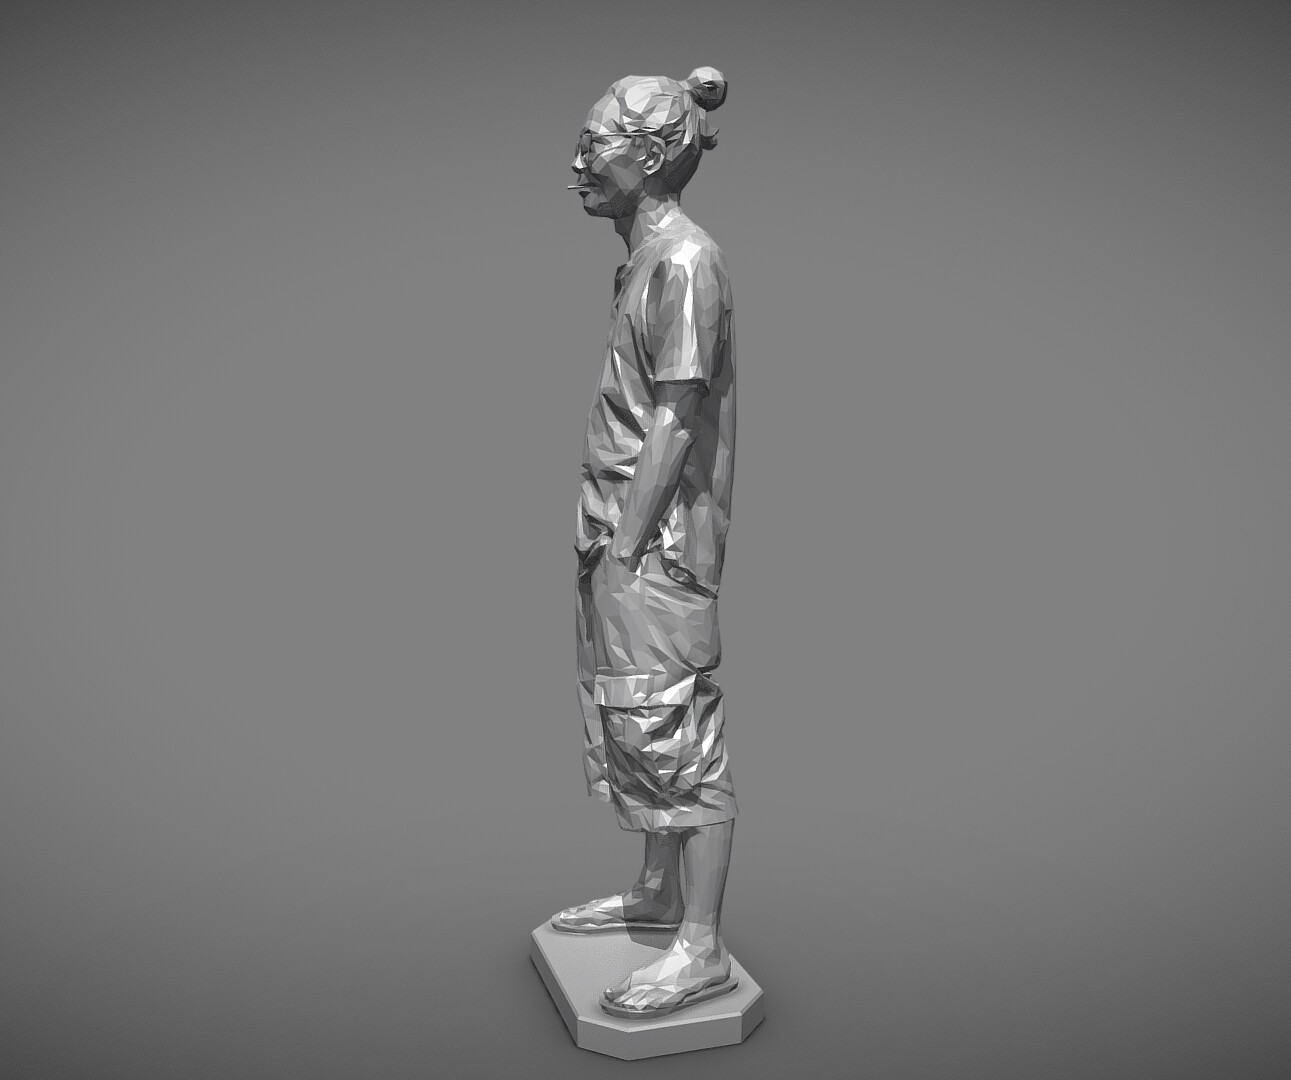 Michael wu mw 3d printing test low downlox free 3d model by mwopus mwopus sketchfab20190320 007950